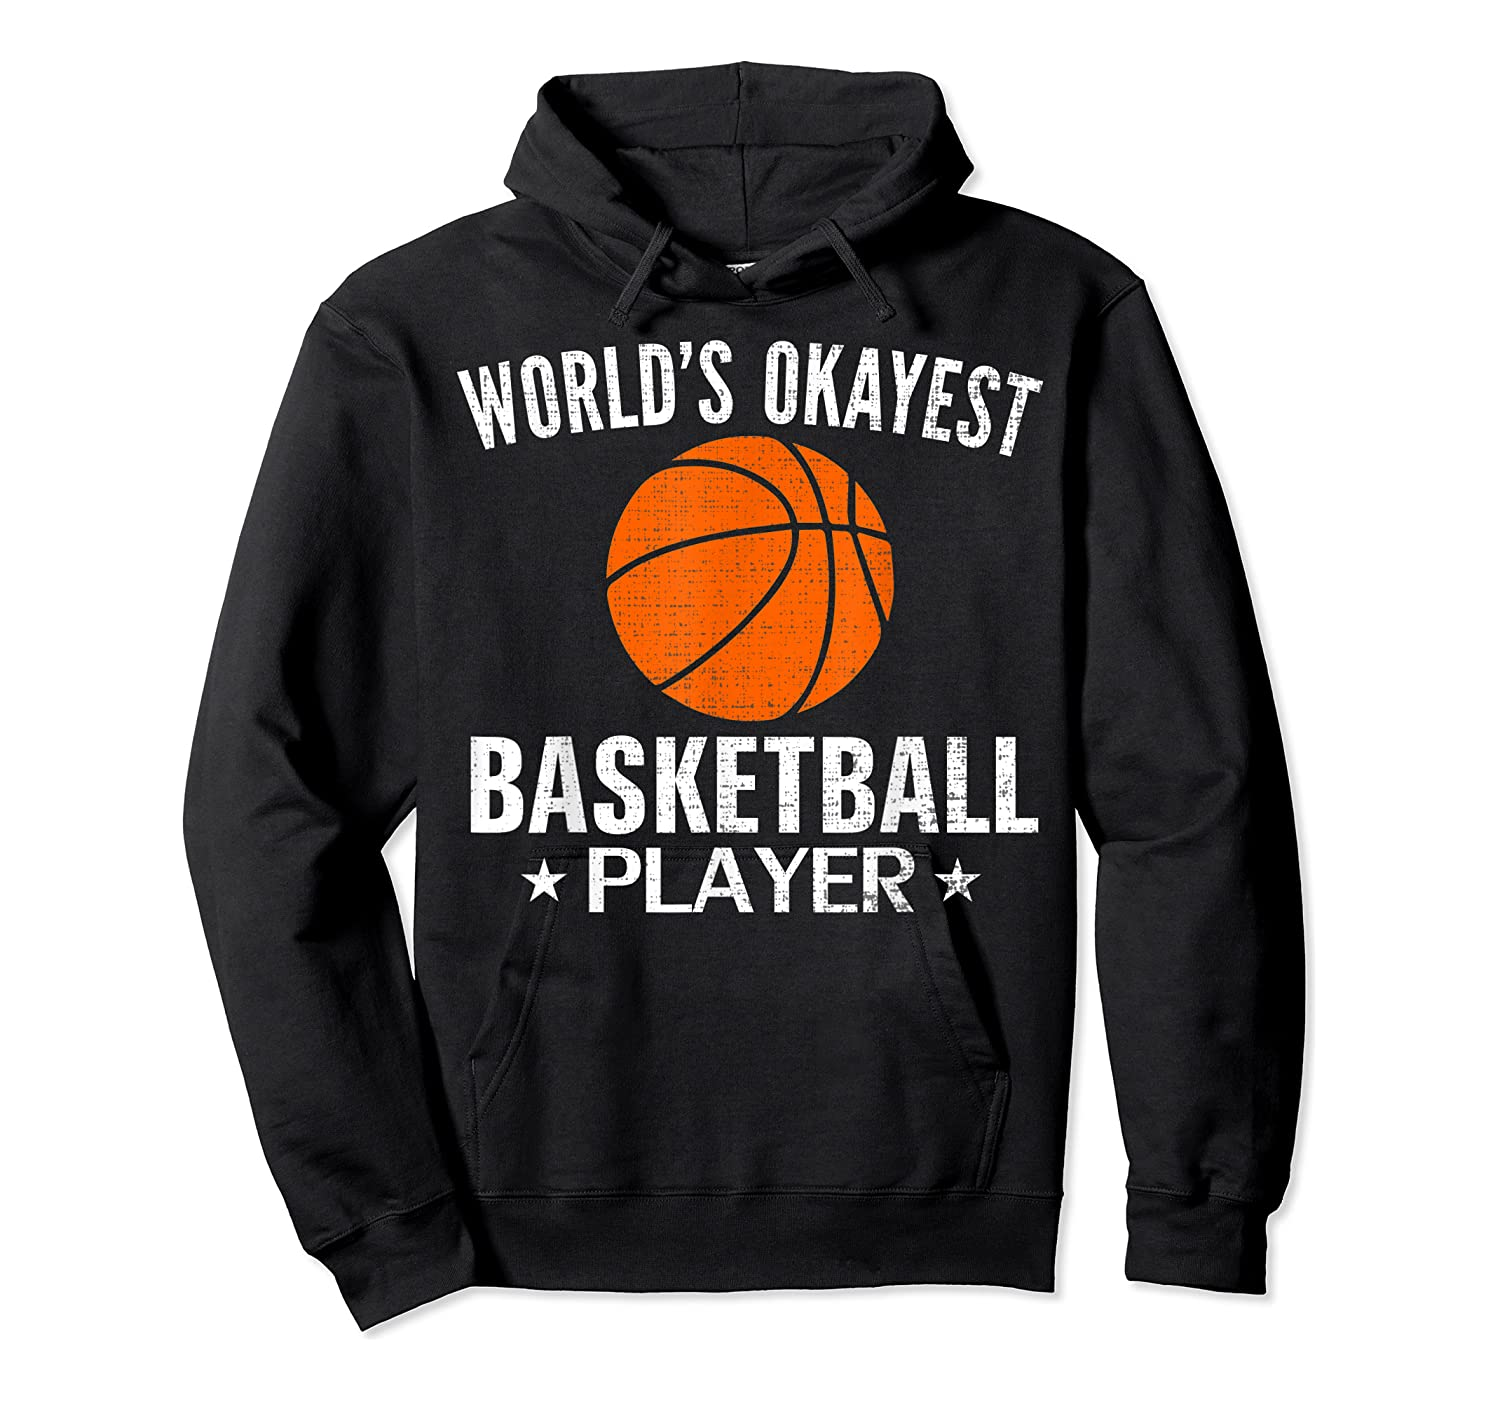 Vintage World's Okayest Basketball Player Funny Sports Gift Shirts Unisex Pullover Hoodie